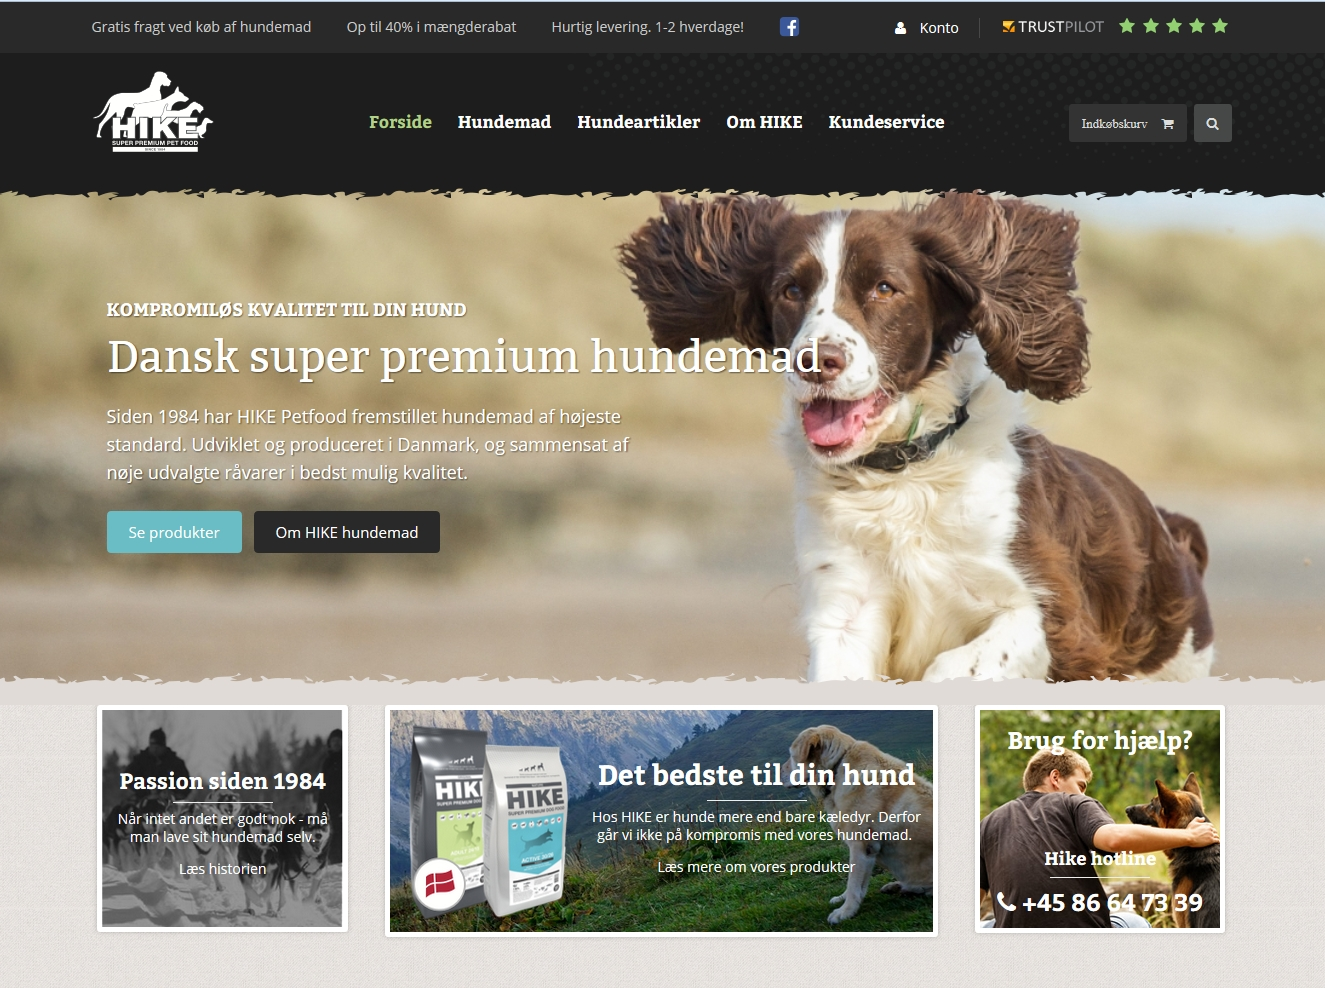 Hike Petfood A/S